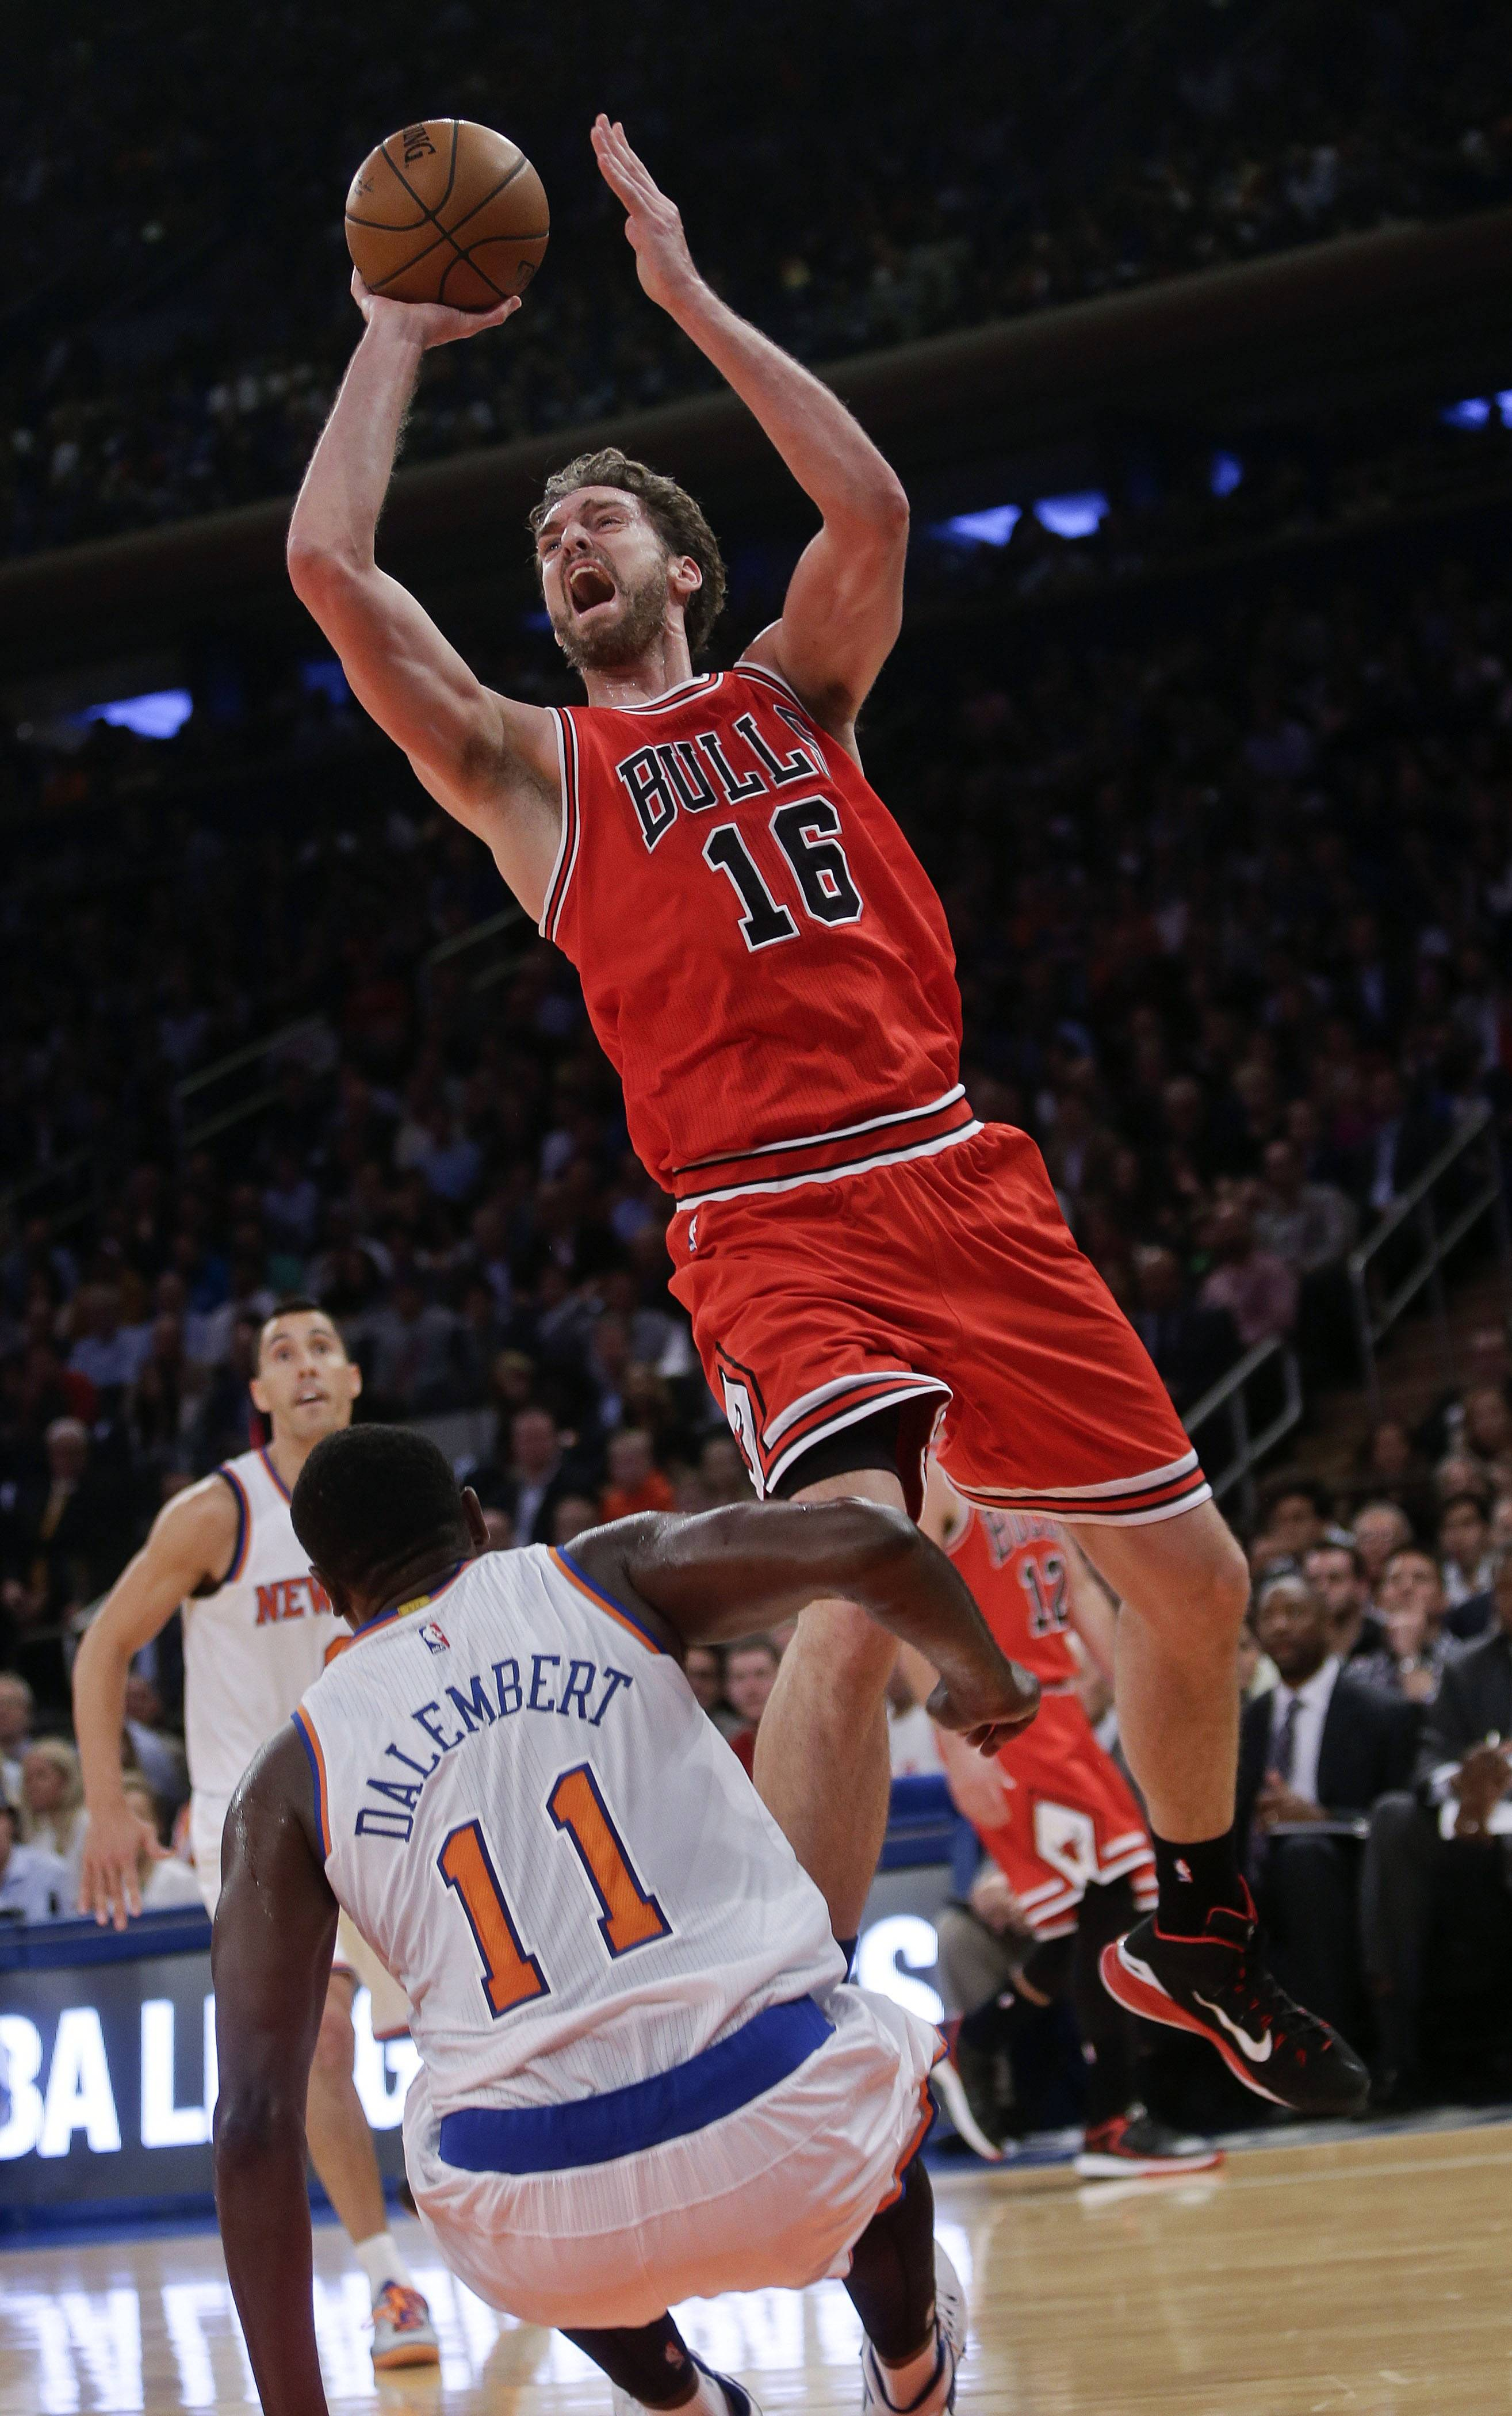 Pau Gasol shoots over the Knicks' Samuel Dalembert in Wednesday night's season-opening victory at New York. Gasol finished with 21 points and 11 rebounds in his Bulls debut.